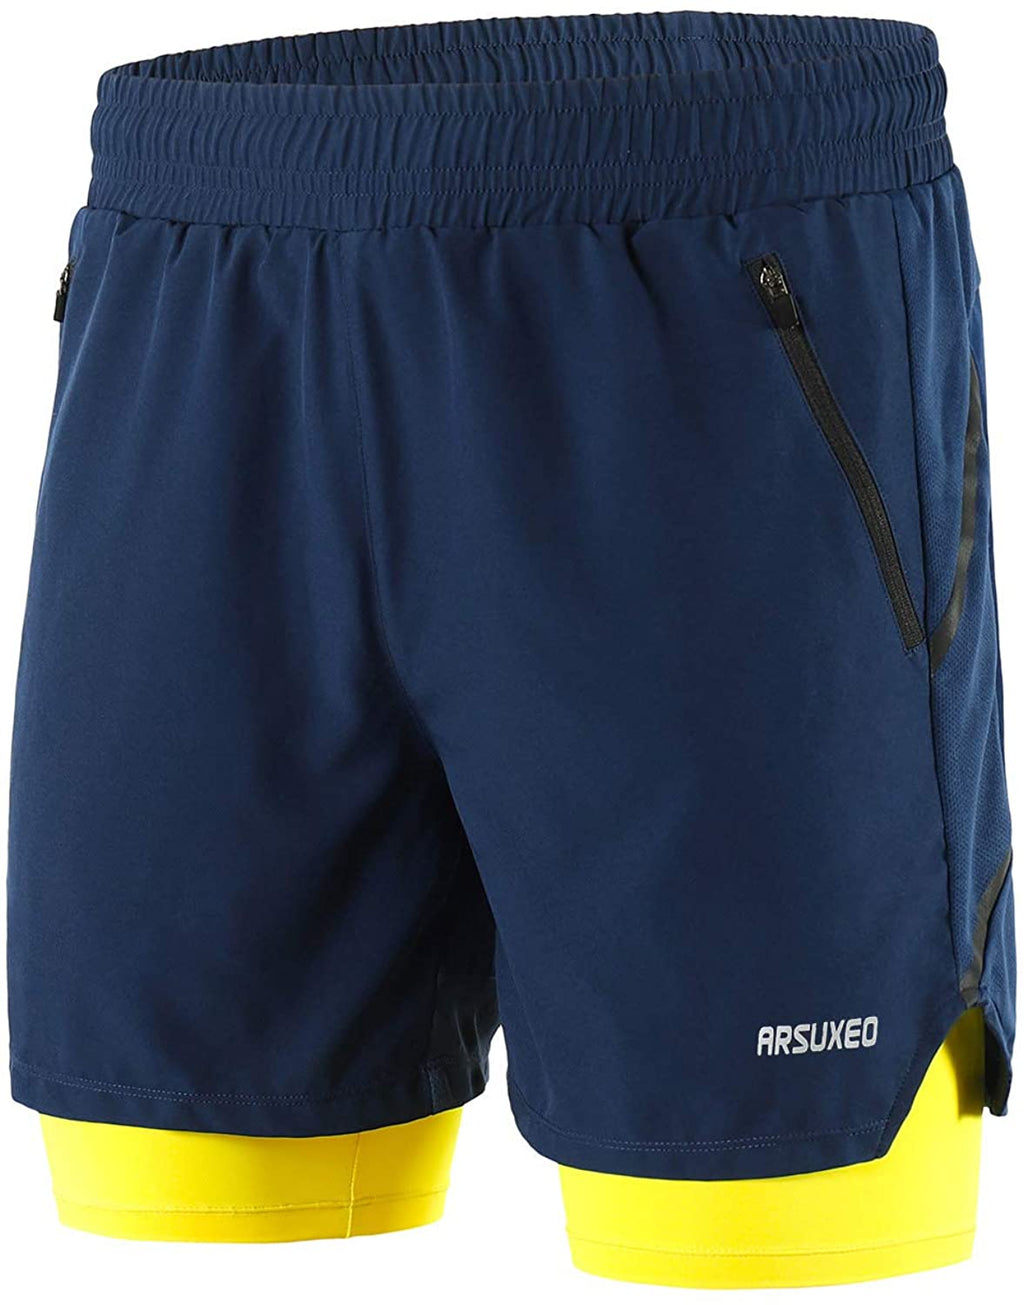 Men's 2 in 1 Active Running Shorts with 2 Zipper Pockets